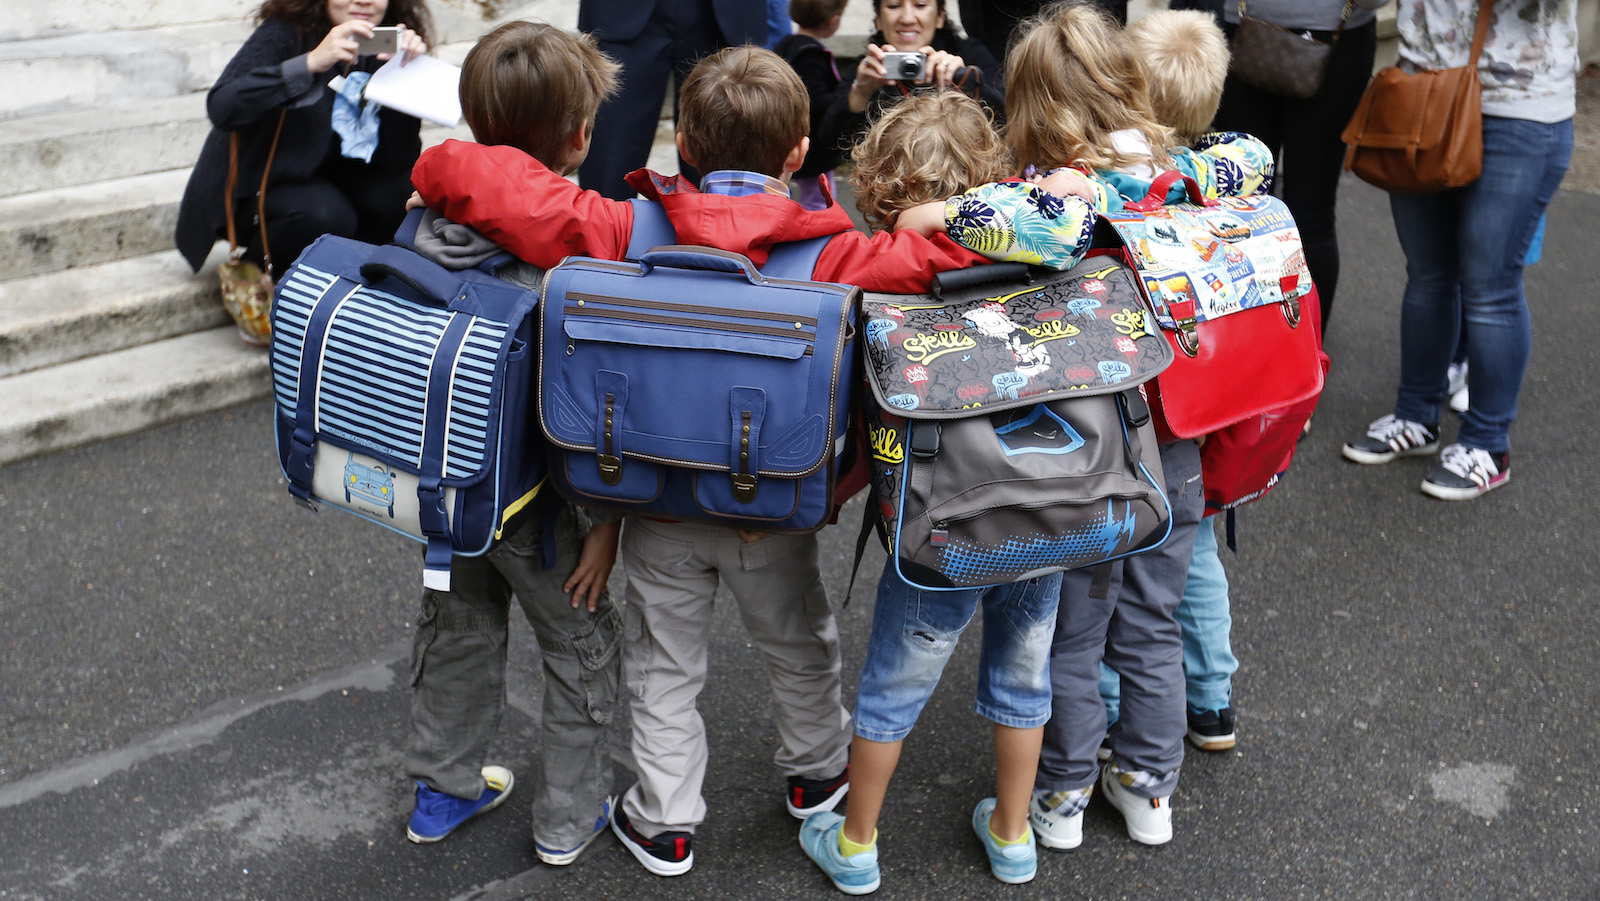 Why Rich Kids Are So Good At >> Why Do The Rich Kids At School Look So Scruffy Quartzy